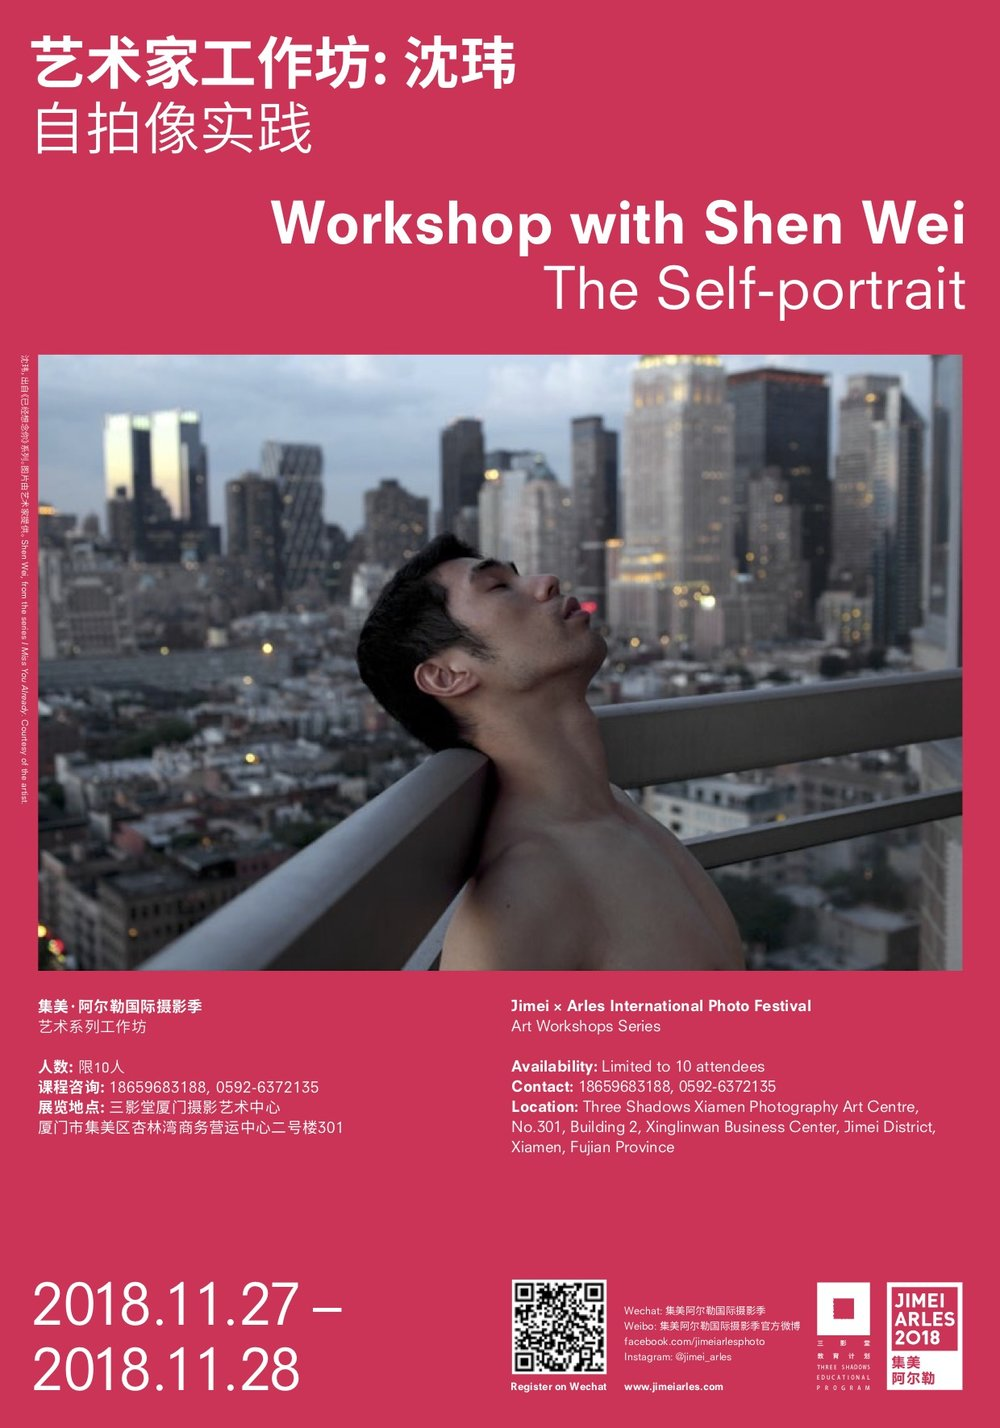 JIMEIARLES_Workshop+Poster_Digital_Shen_Wei.jpg